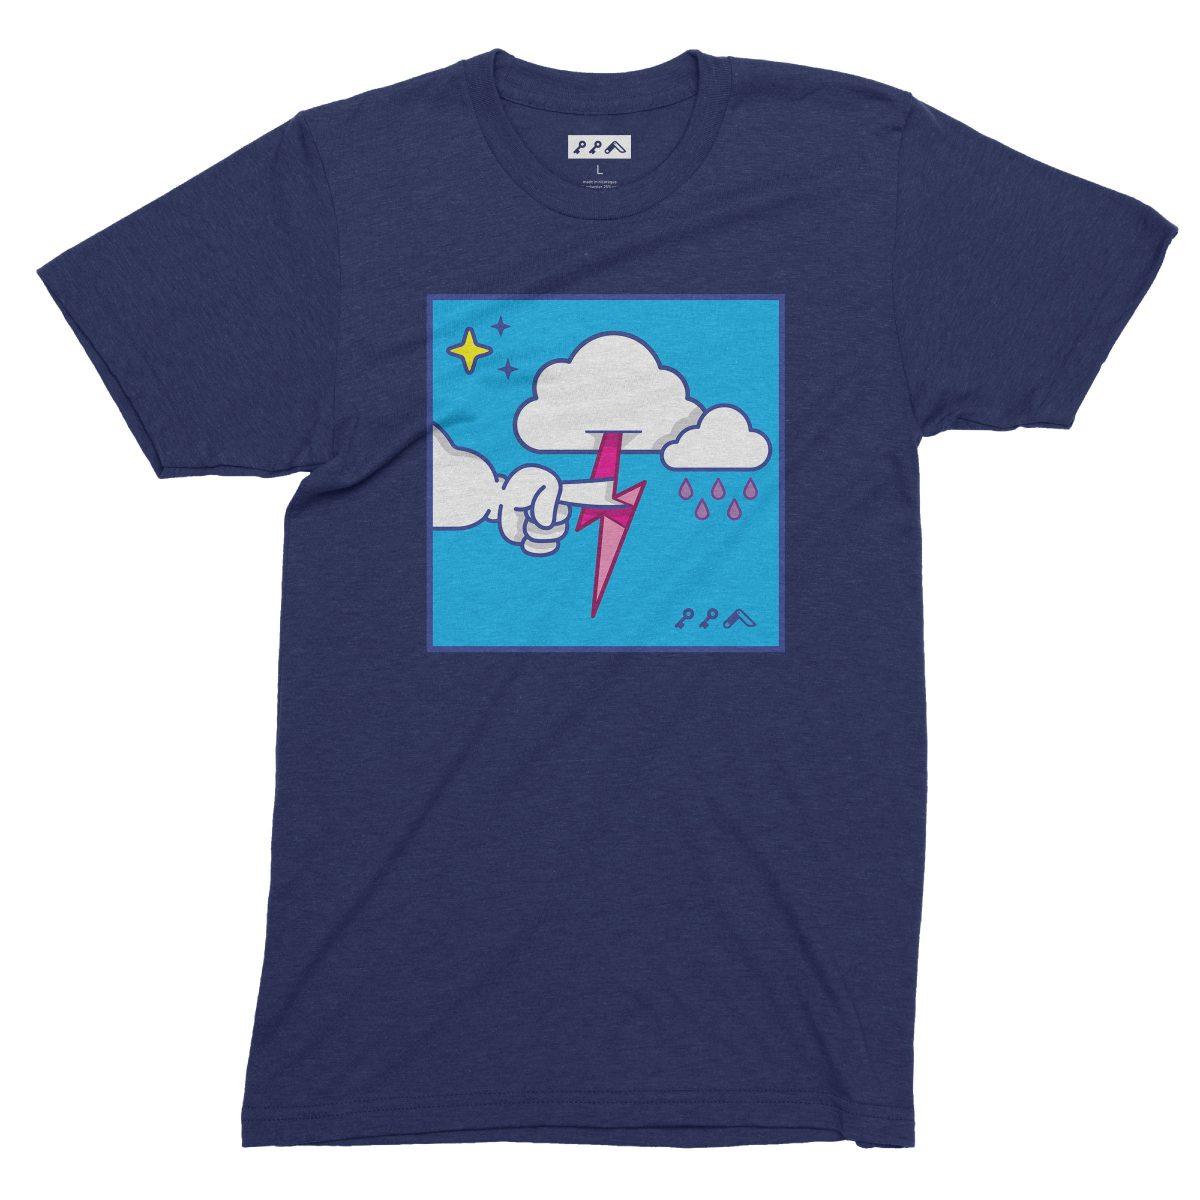 """""""MUTUAL CLOUDSENT"""" funny adult cartoon animation style tee in navy by kikicutt"""